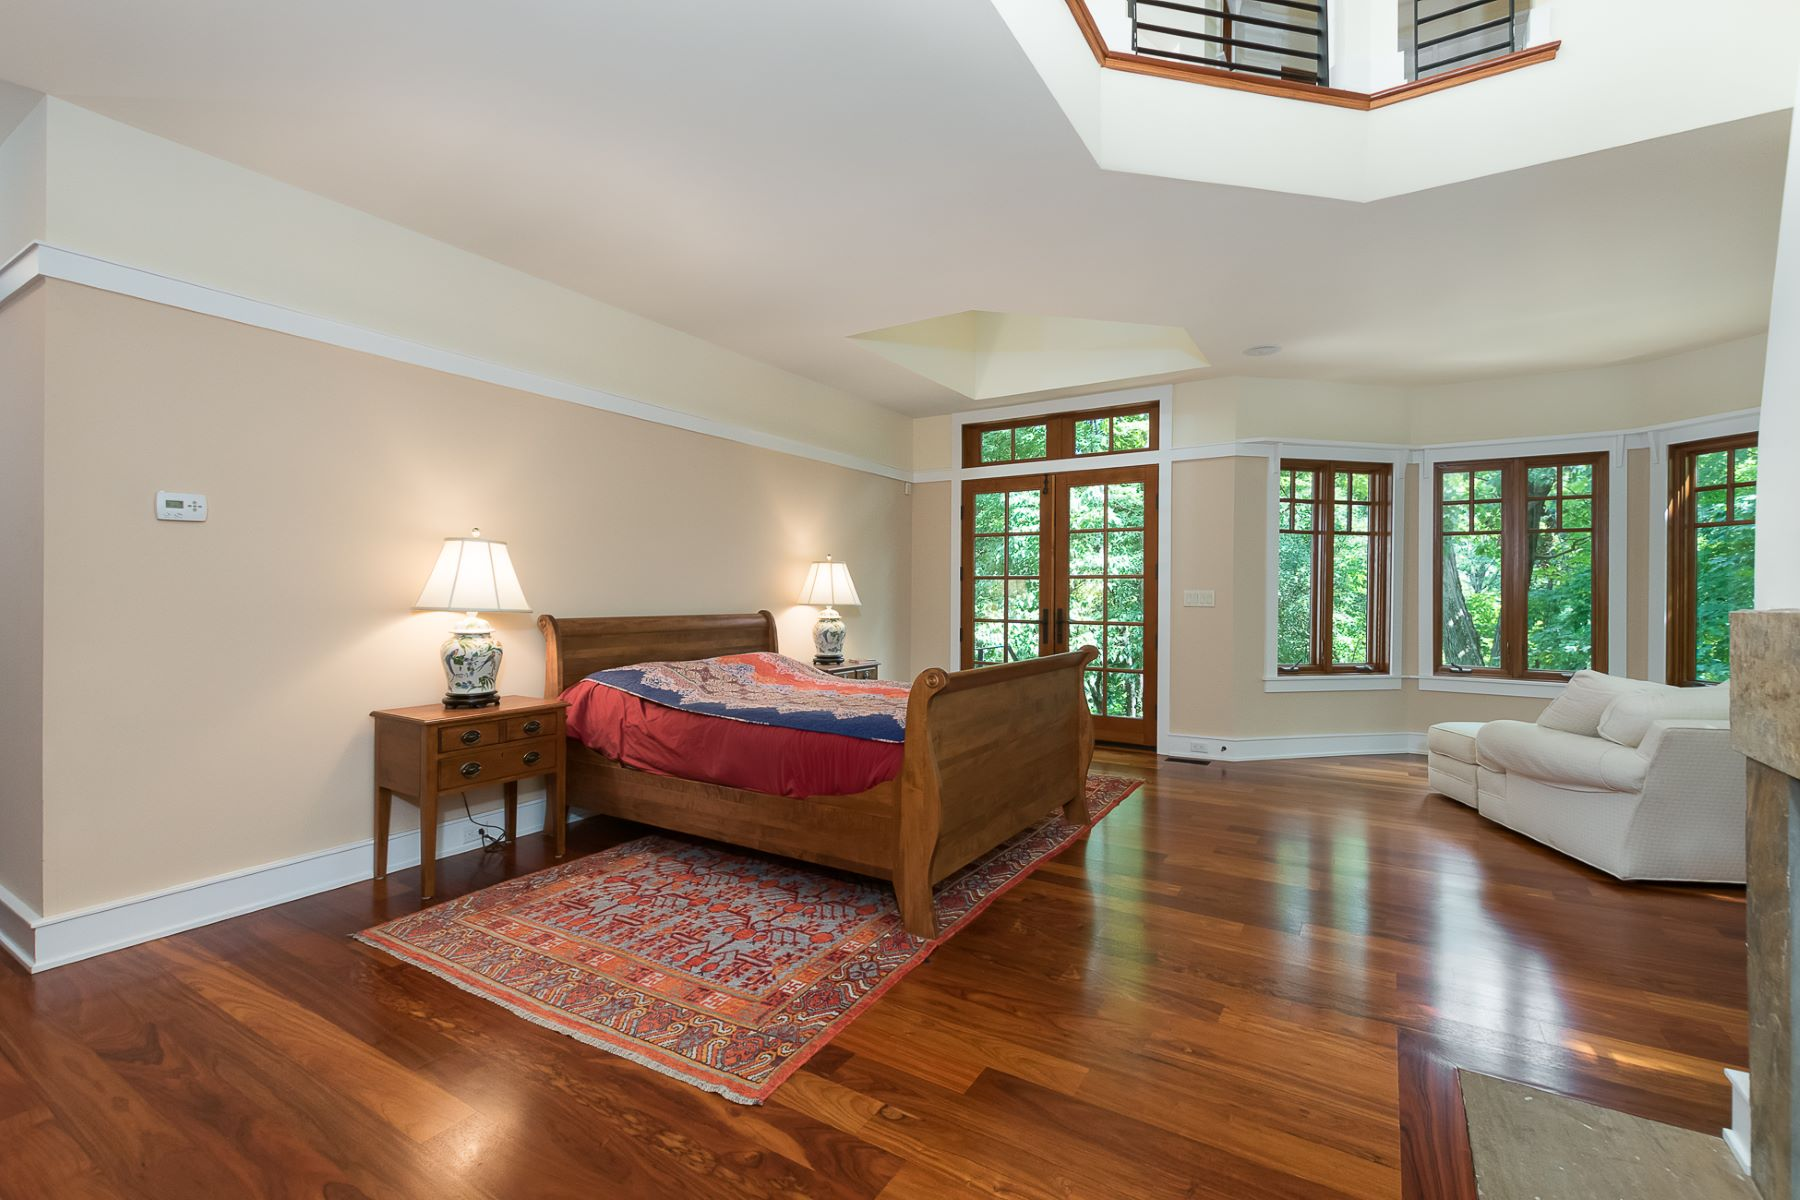 Additional photo for property listing at Luxury Home Perched Above Stoney Brook 37 Stoney Brook Lane, Princeton, New Jersey 08540 United States